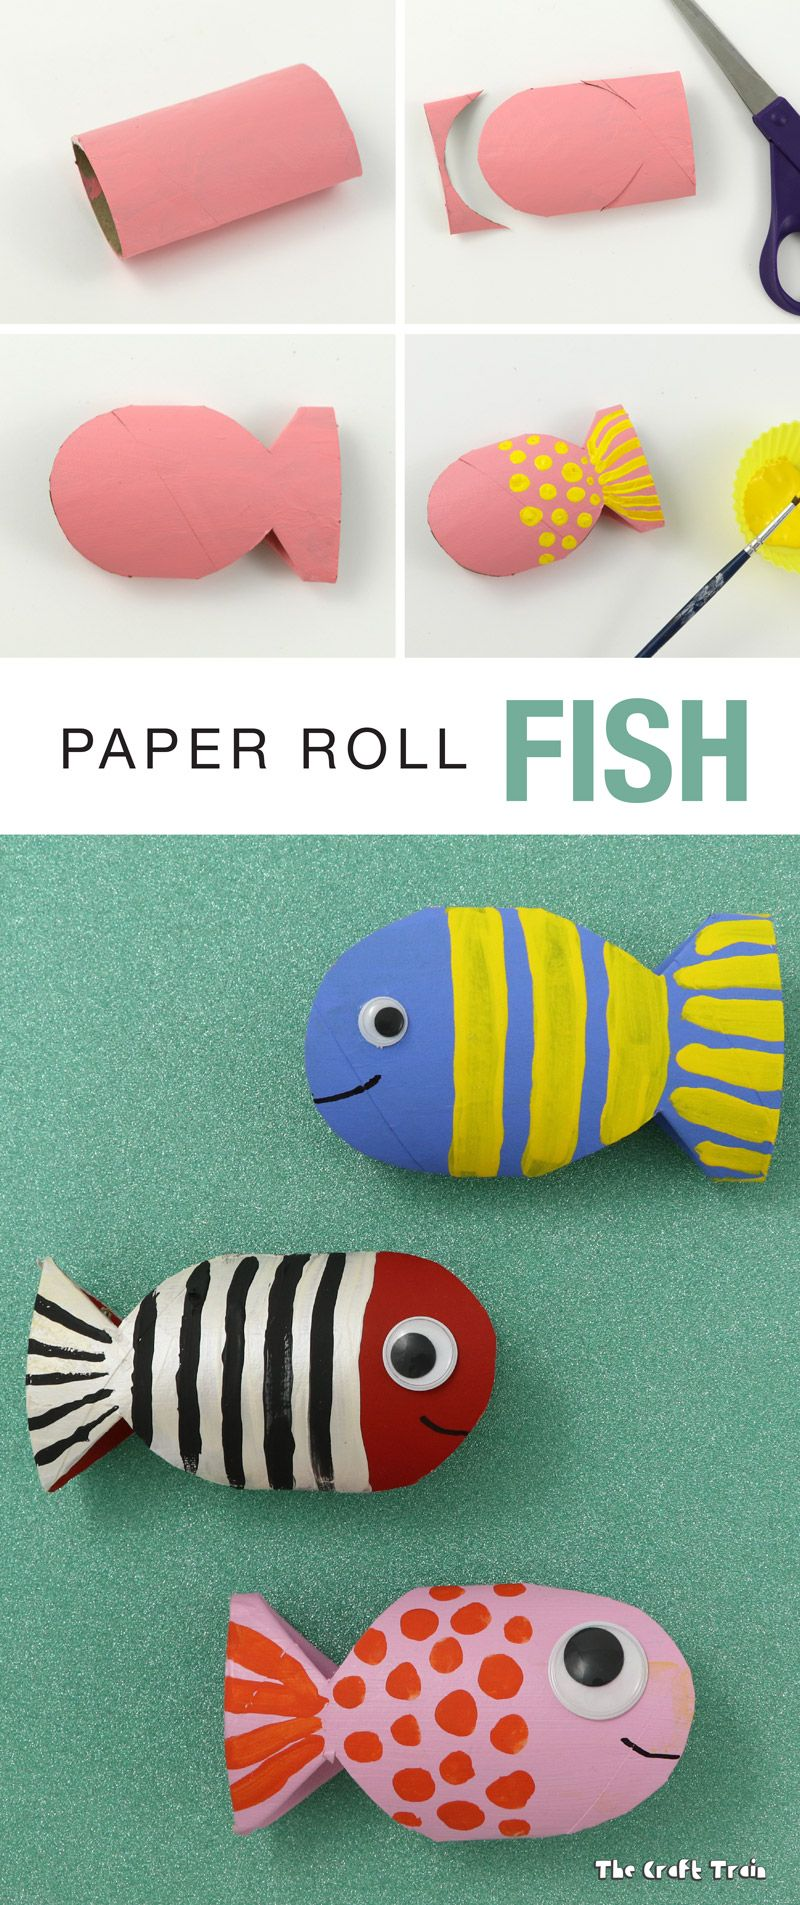 Paper roll fish recycling craft #recycledcrafts